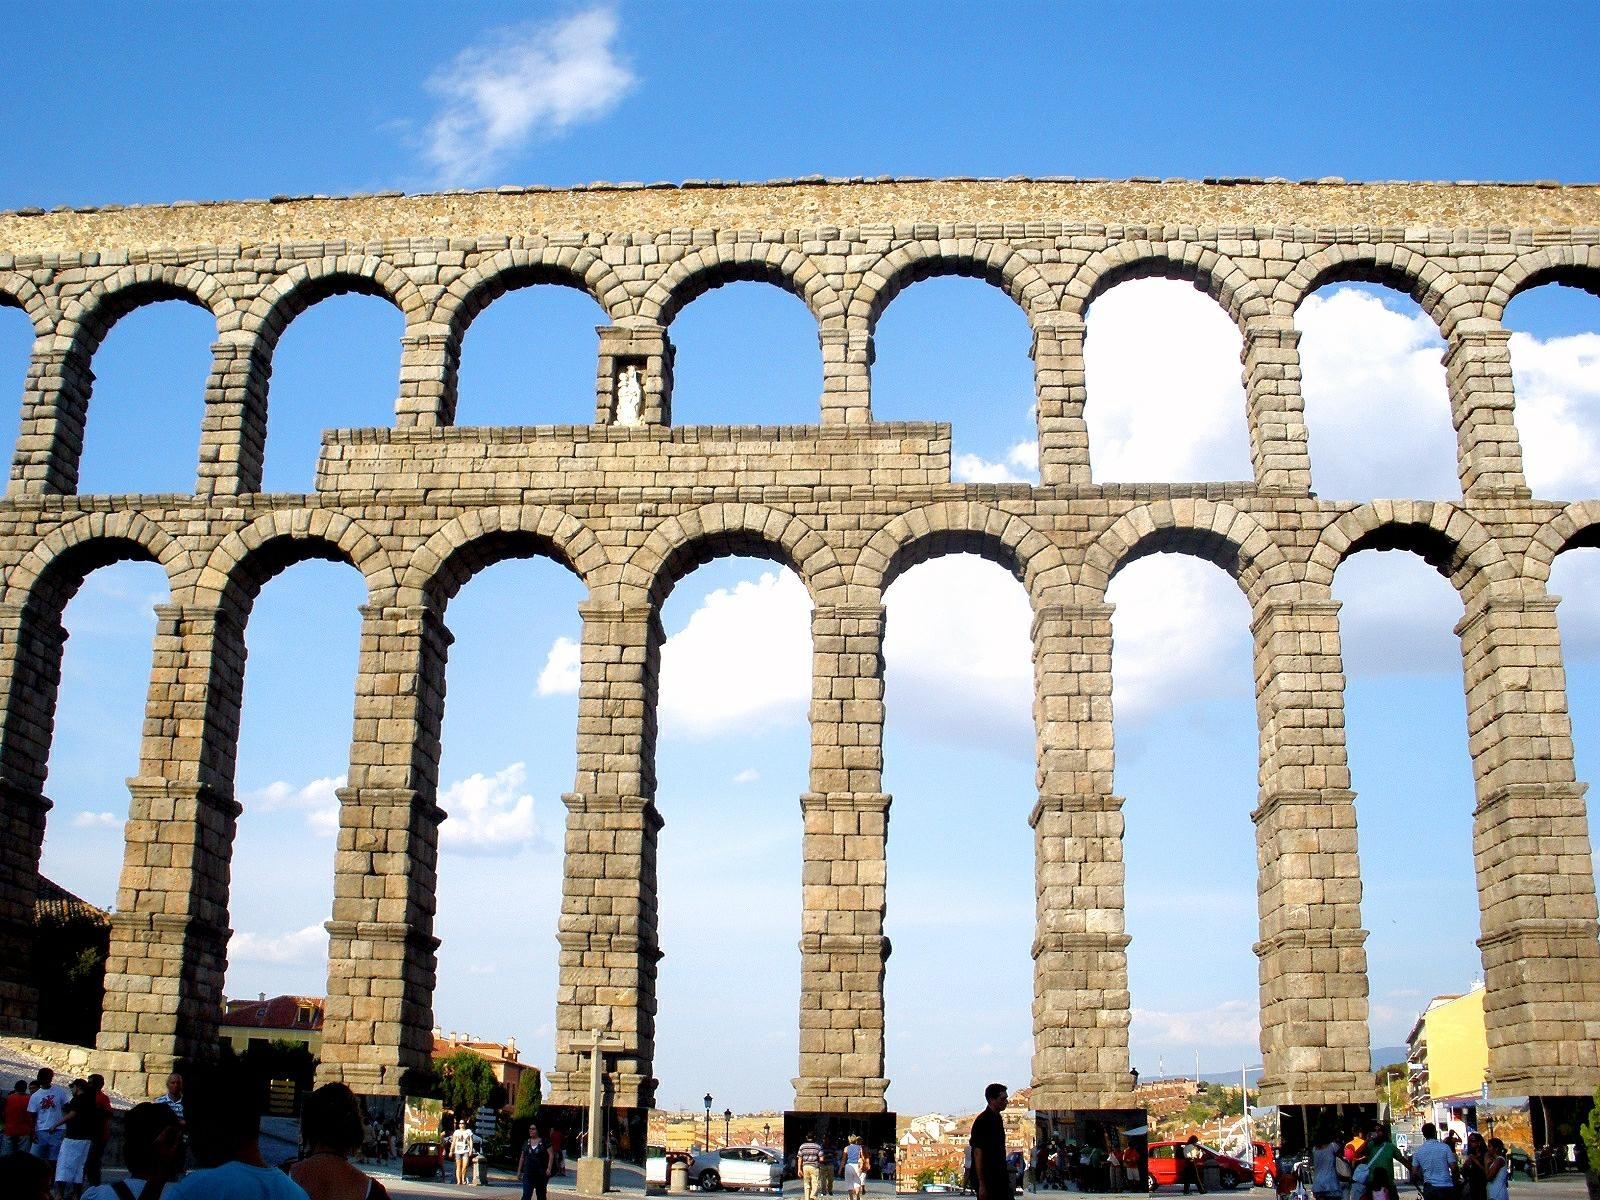 Roman aqueducts for private and public benefit